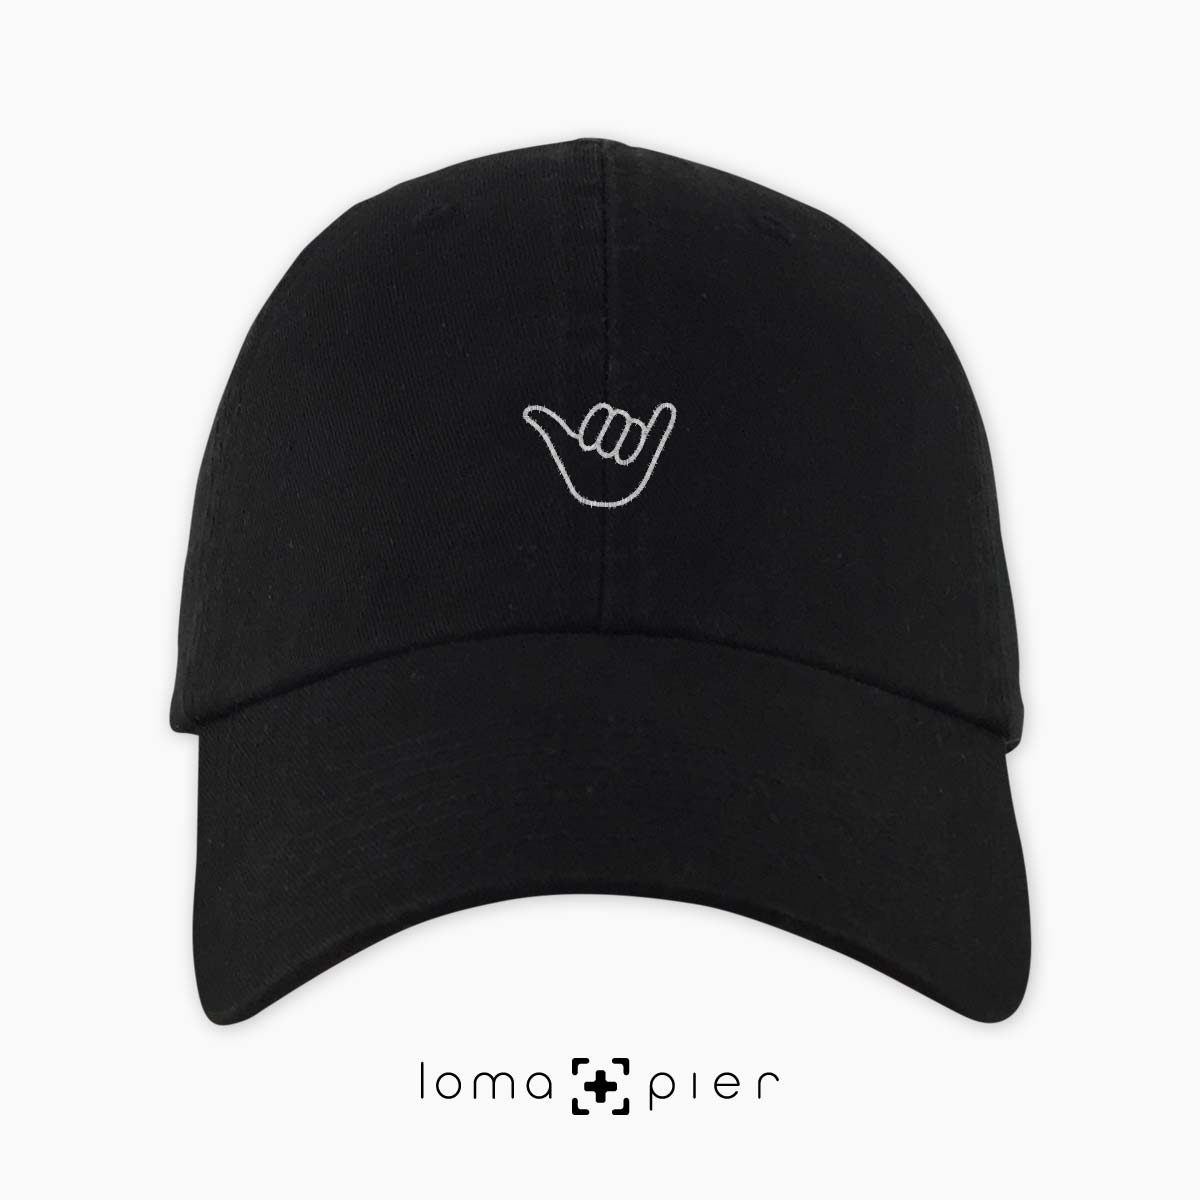 HANG LOOSE icon embroidered on a black unstructured dad hat by loma+pier hat store made in the USA